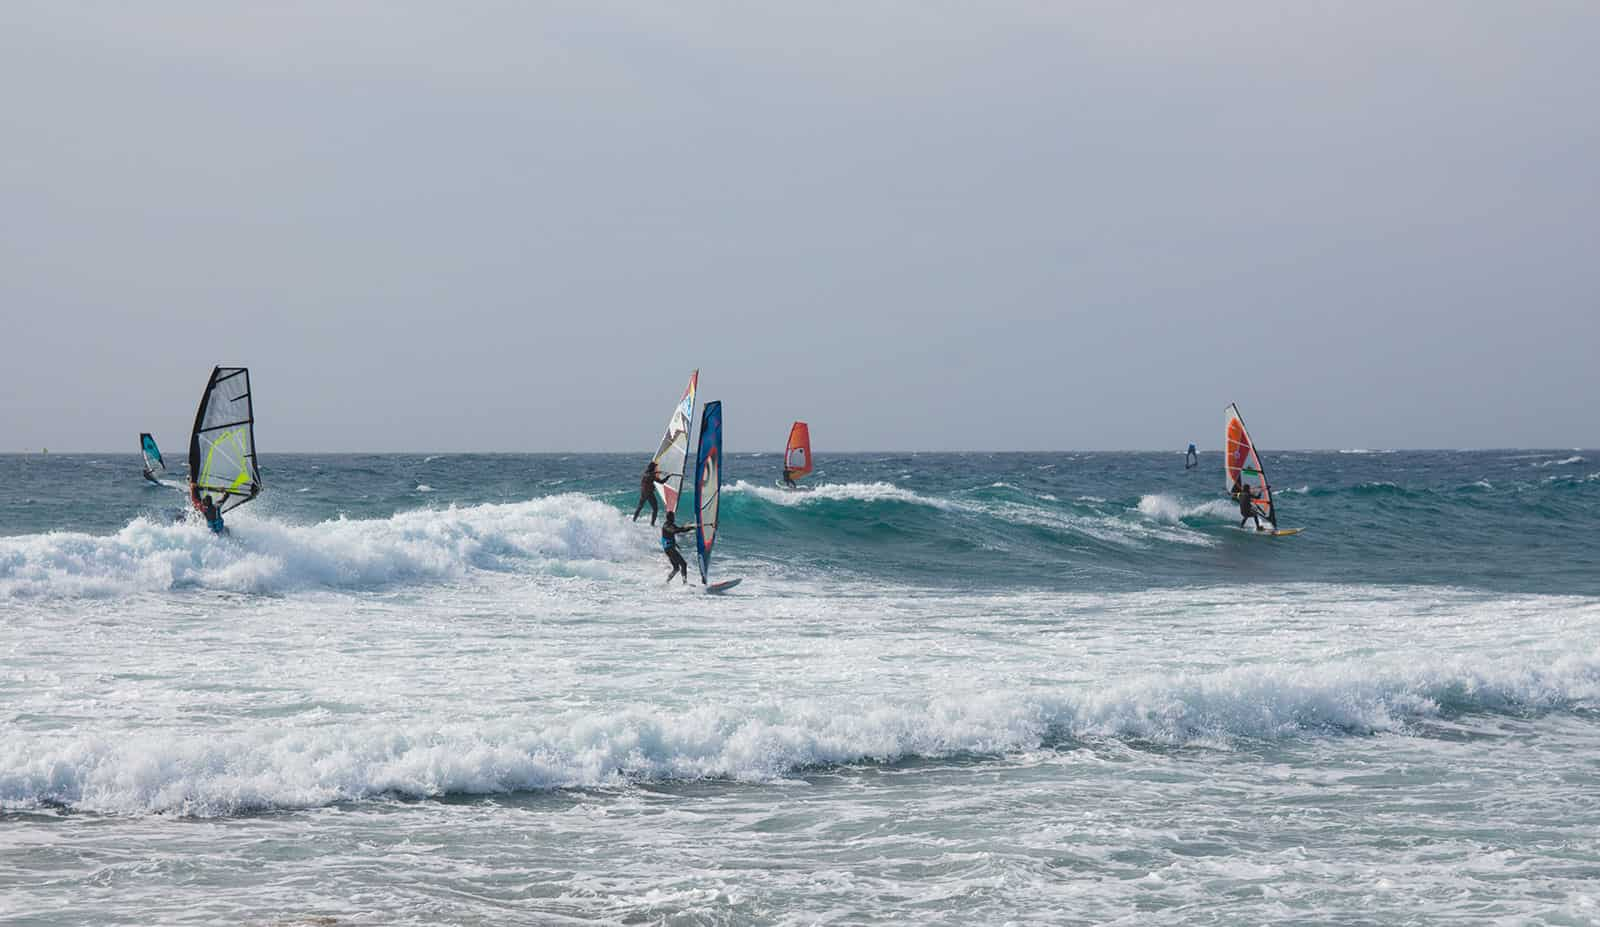 Even getting in and out with all the equipment looks sketchy :) Party wave windsurf style.